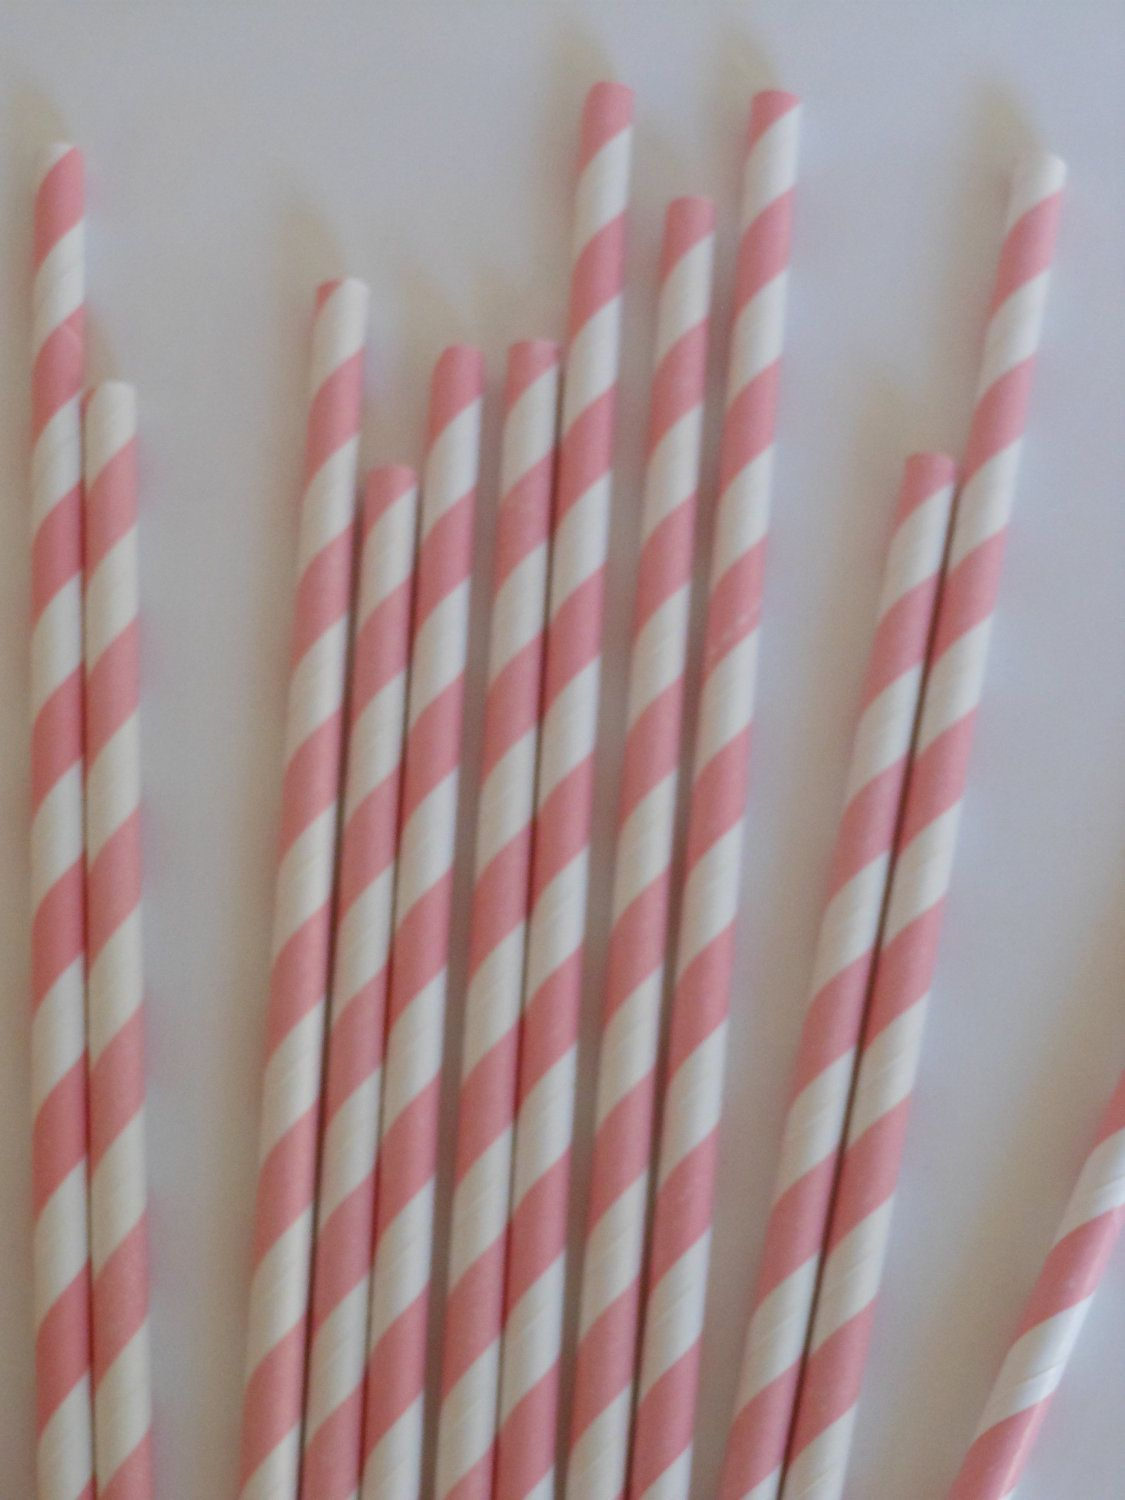 Pink and White Striped Retro Straws 25 by ASweetCelebration, $4.00